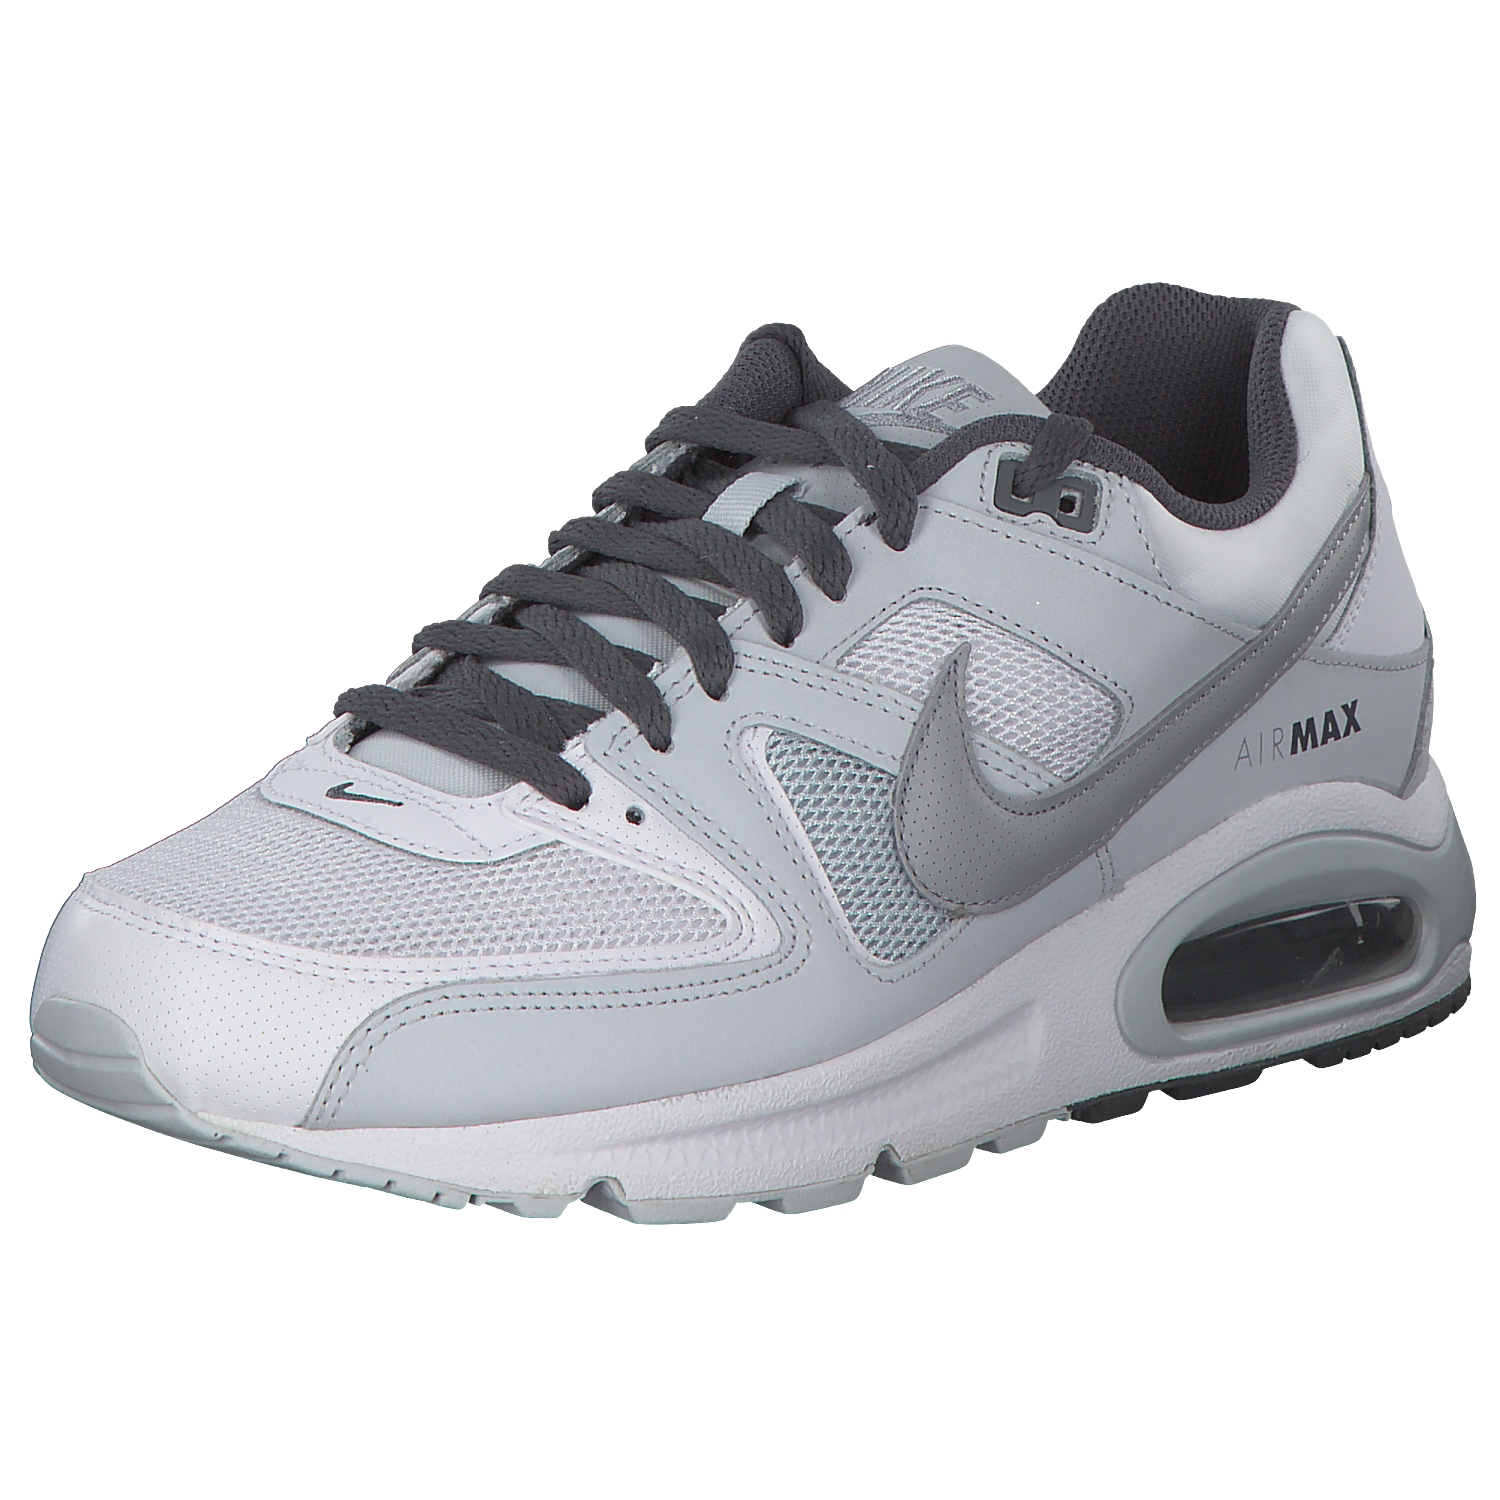 Details about Nike Air Max Command Men Sneakers Sneakers Running Shoes 629993 107 White Grey